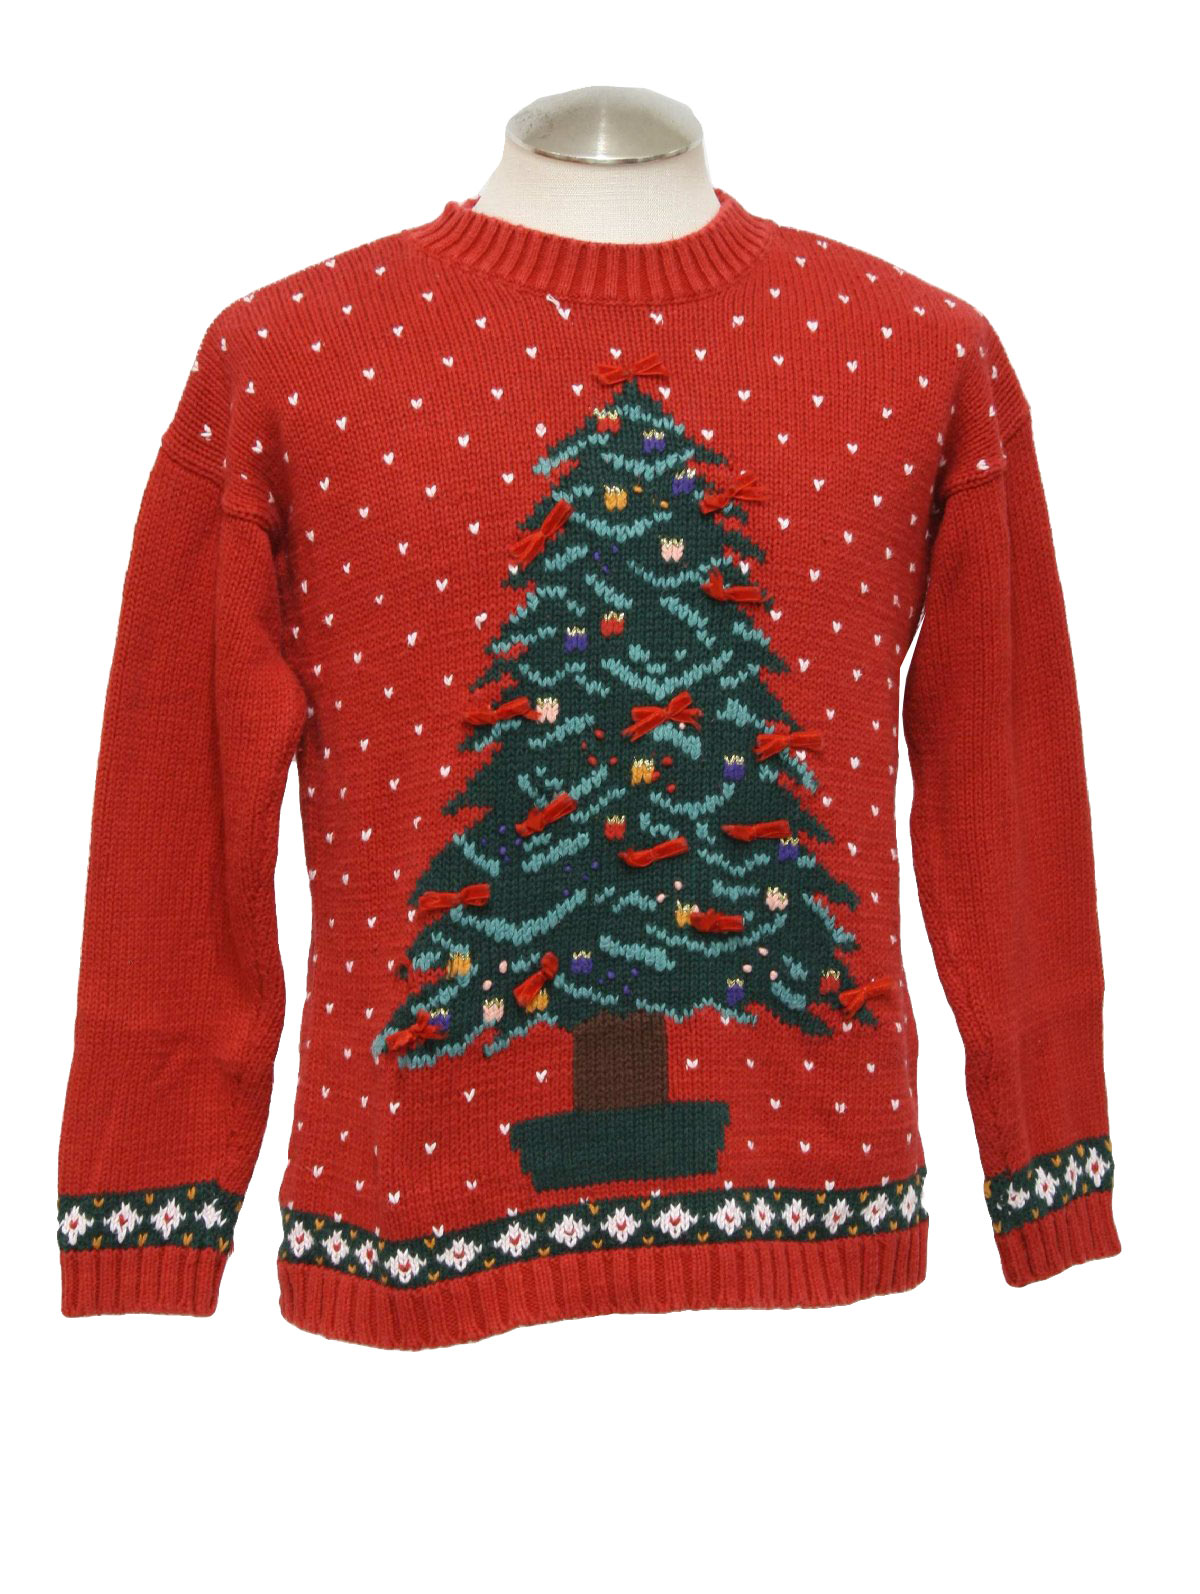 552509c45a48 Womens Ugly Christmas Sweater  -Lauren Rogers- Womens red